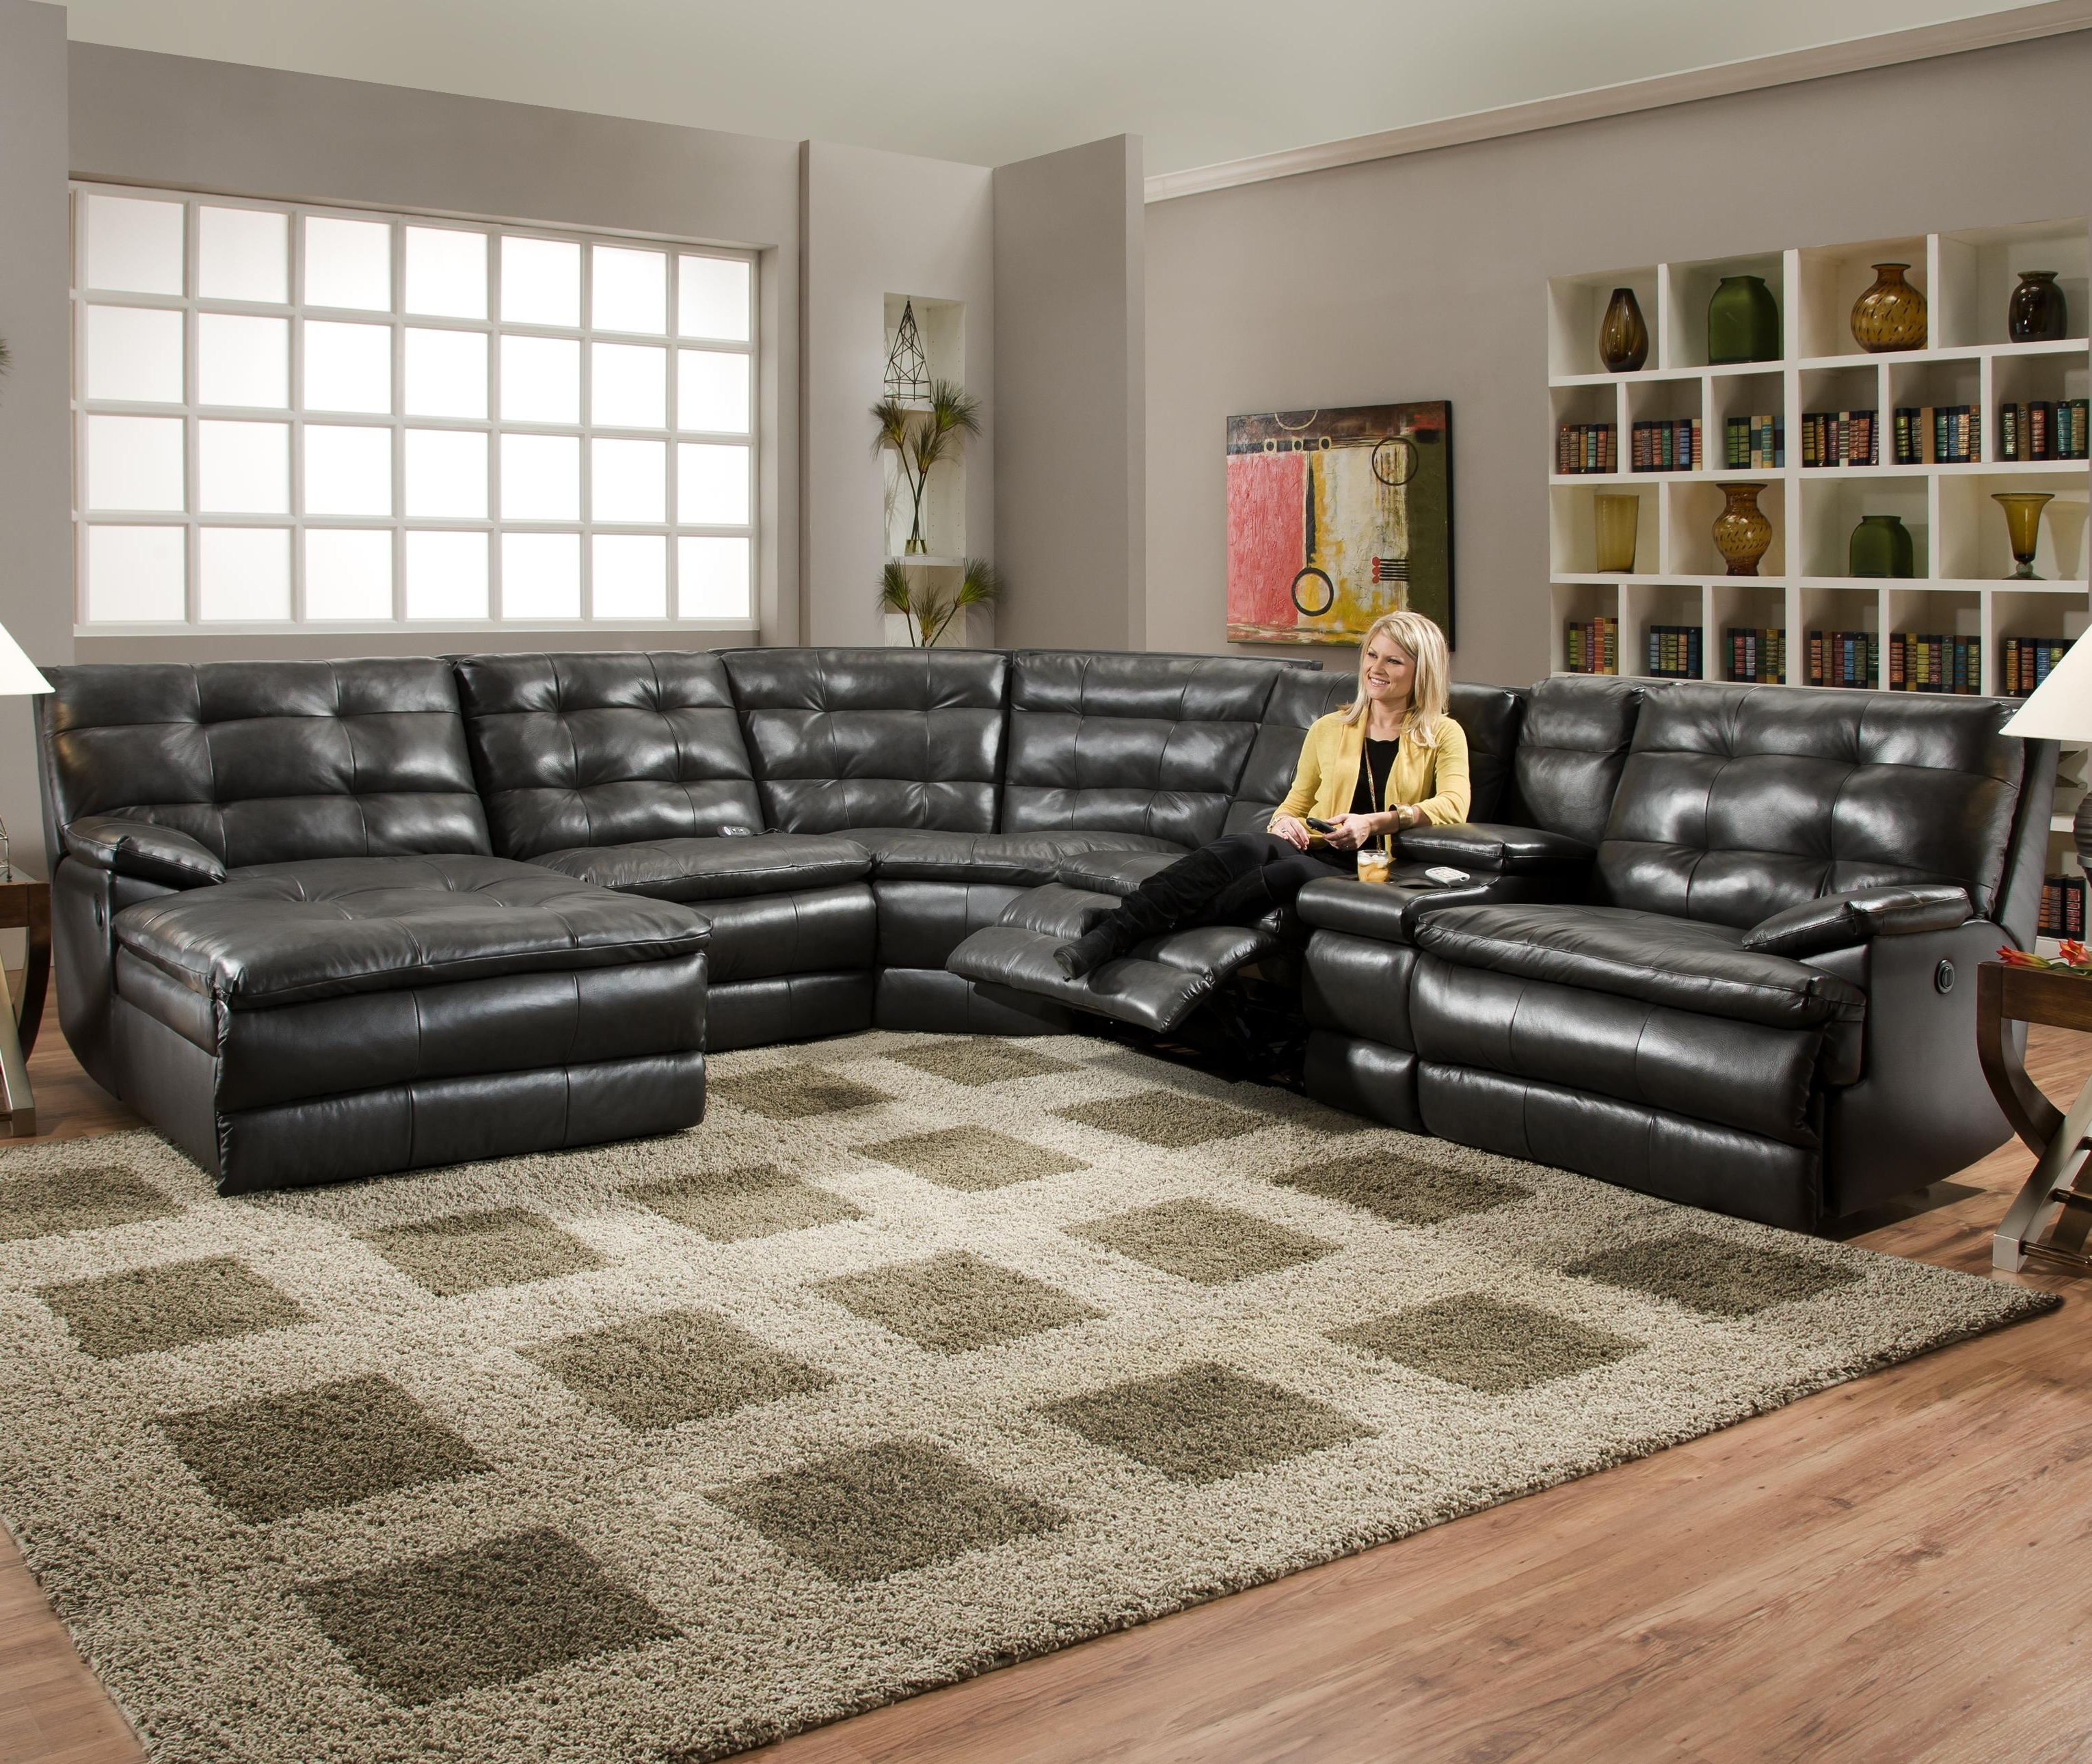 Best And Newest Large Sectional Sofas For Luxurious Tufted Leather Sectional Sofa In Classy Black Color With (View 15 of 15)